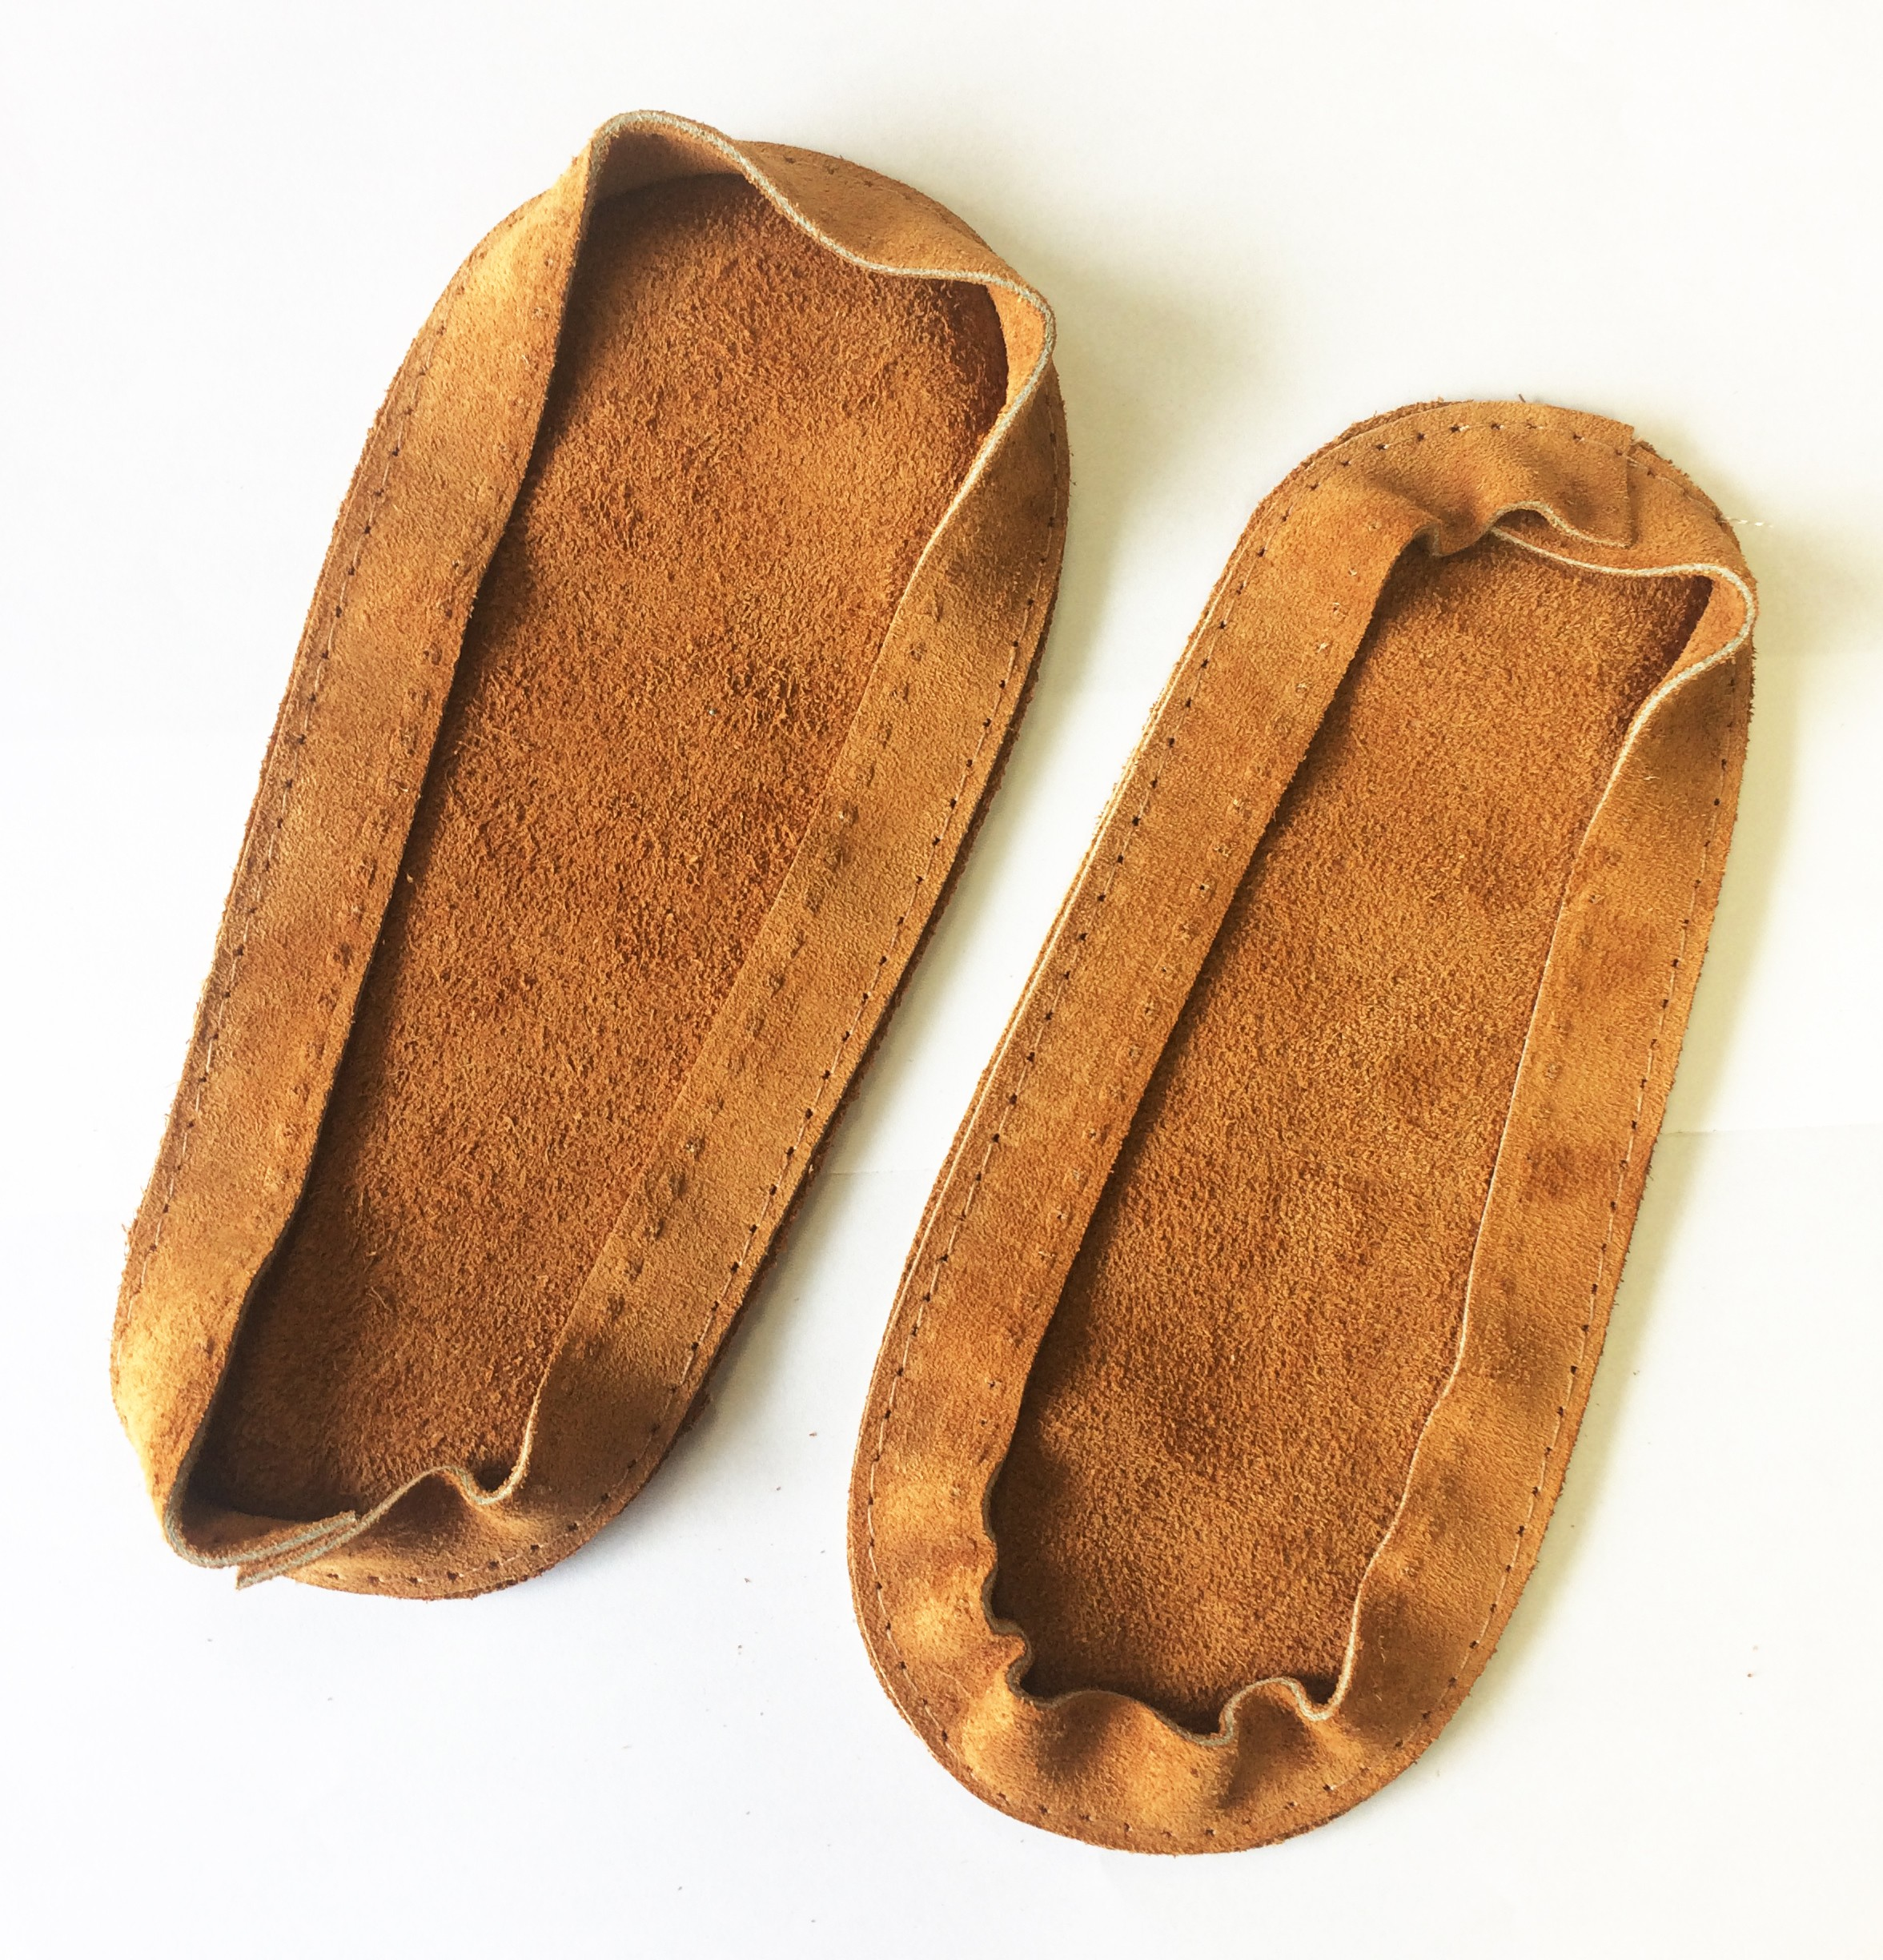 Soul Comfort - Leather Slipper Sole, Infant Size 13 (ON SALE - 25% OFF!)